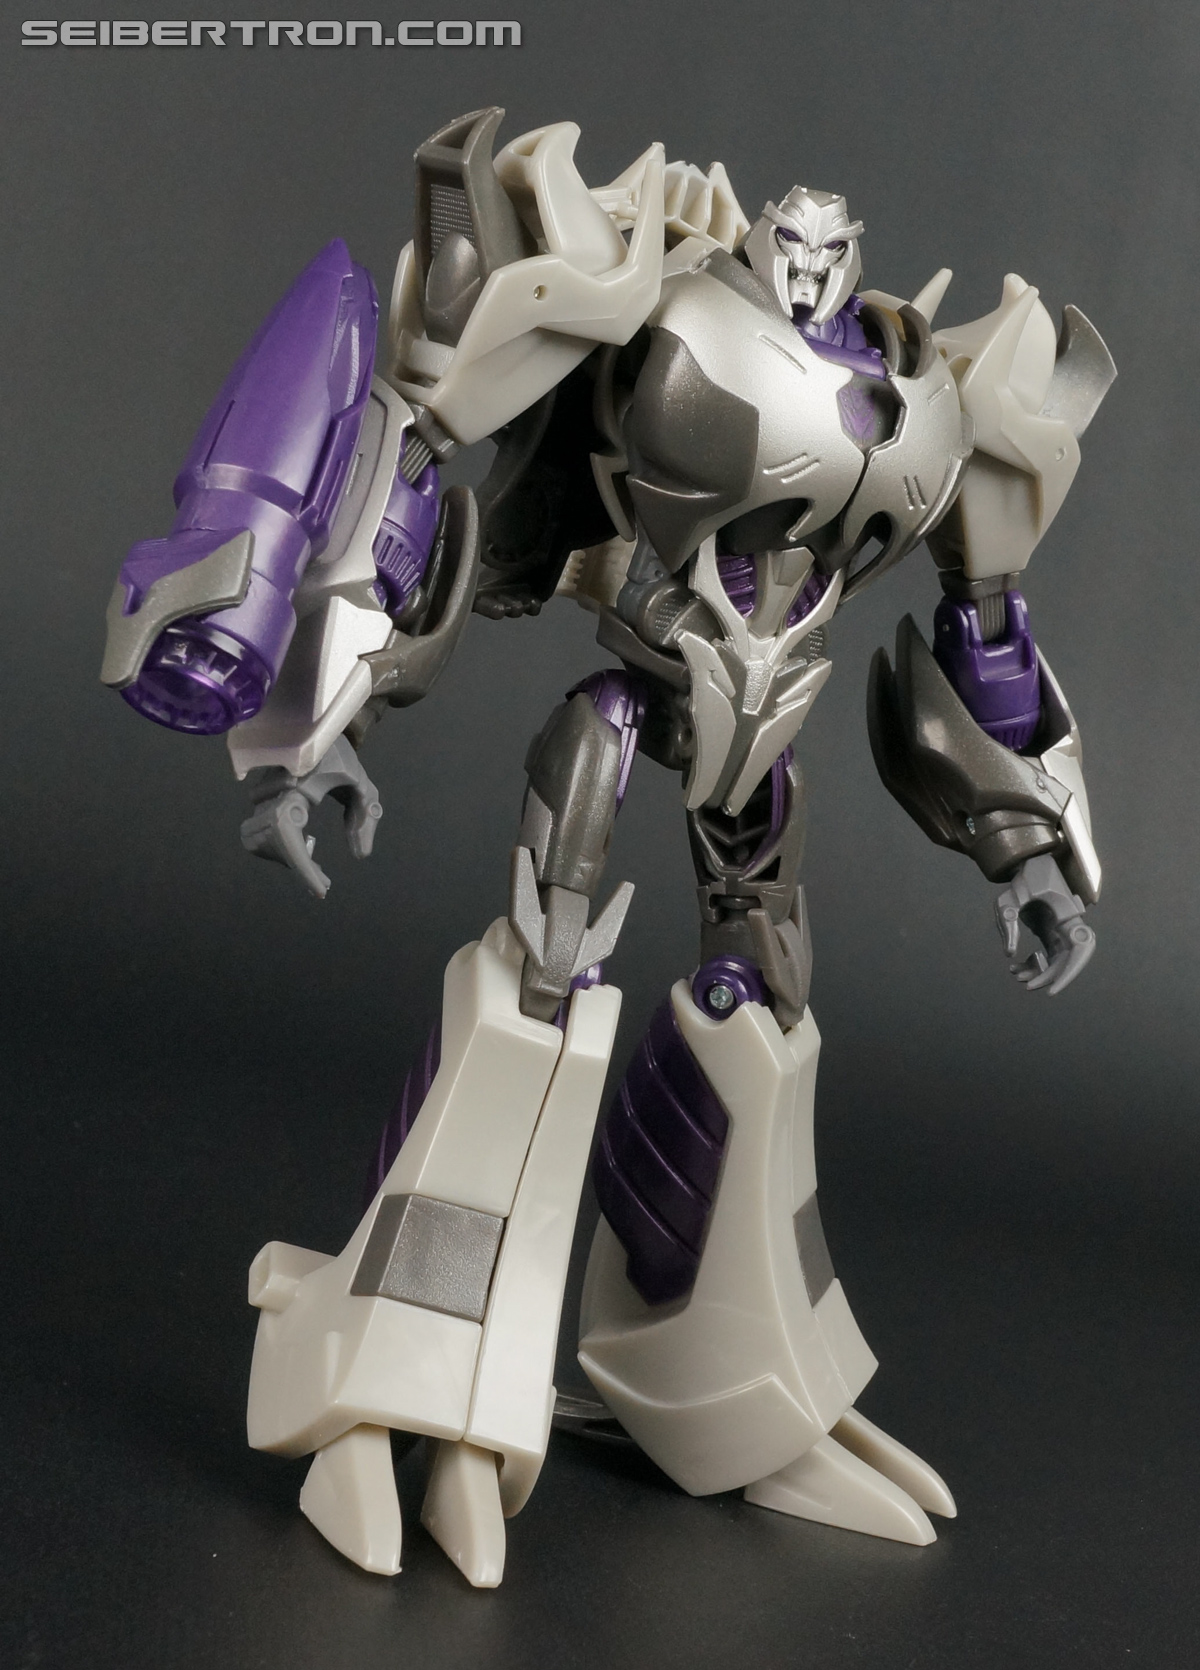 Transformers First Edition Megatron (Image #110 of 165)